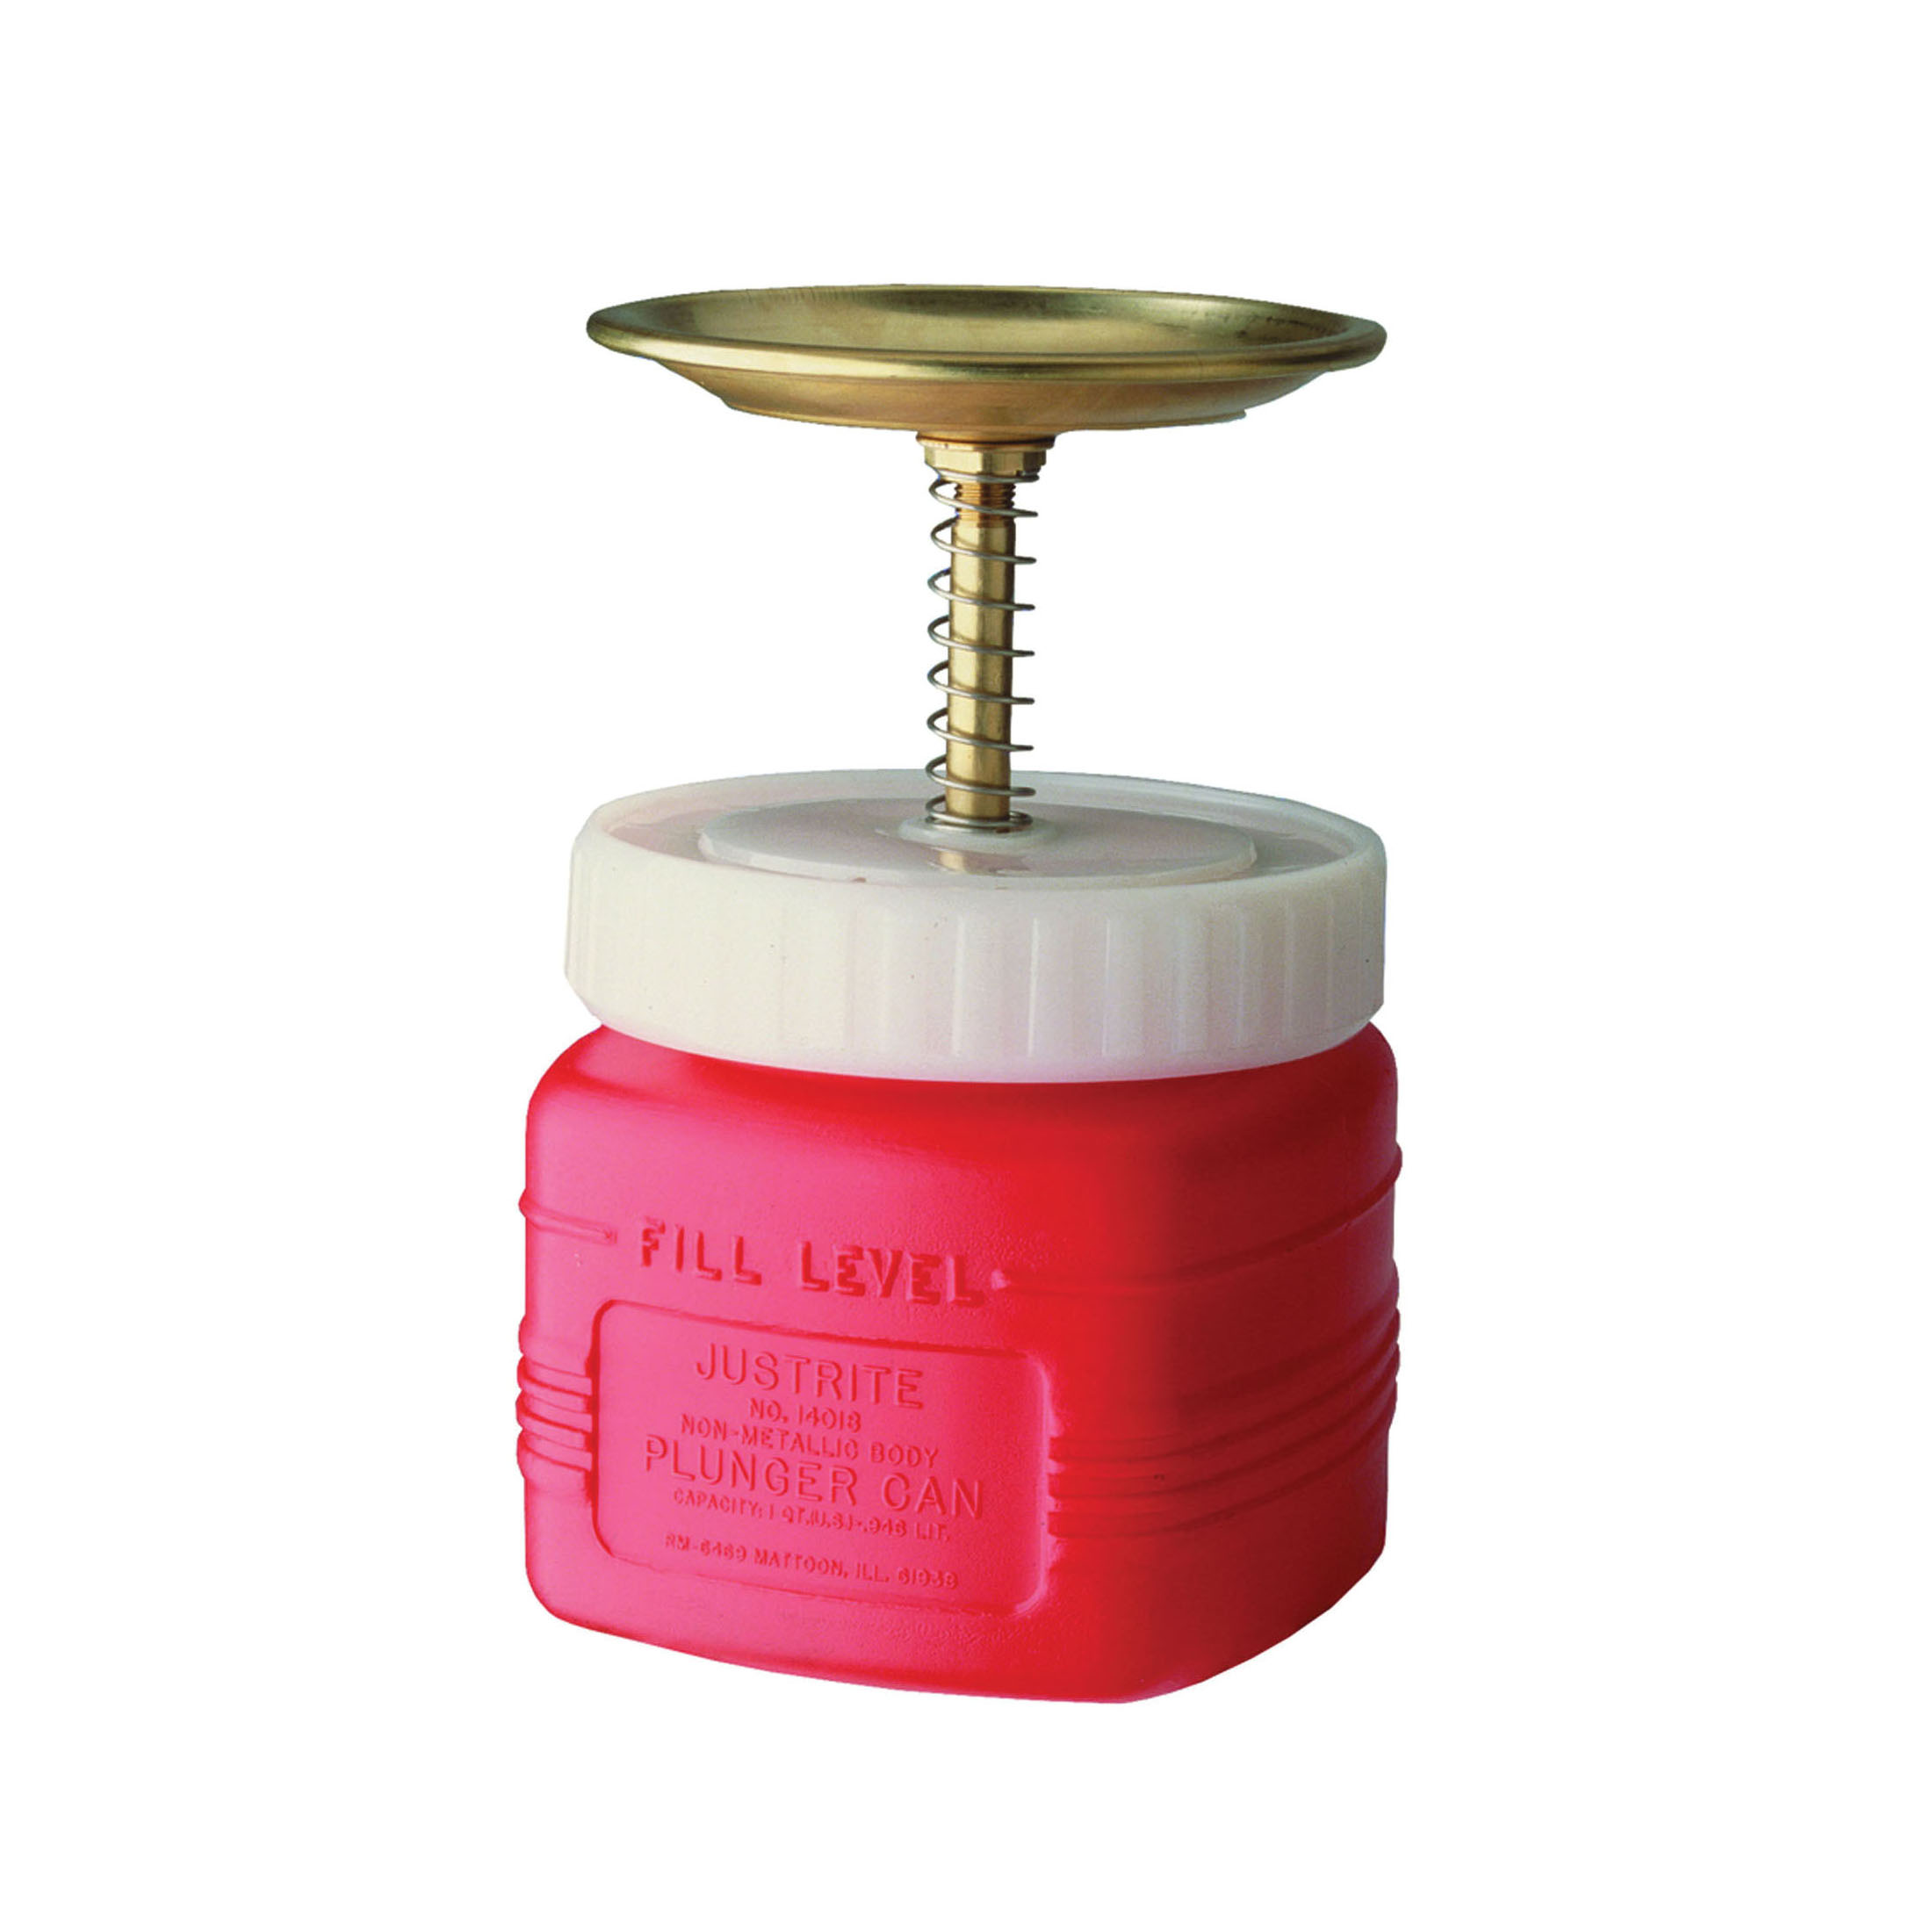 Justrite® 14018 Non-Metallic Plunger Dispensing Can, 1 qt, Brass Dasher/Polyethylene, Red, Brass/Ryton® Plunger, 5 in Dia Dasher Plate